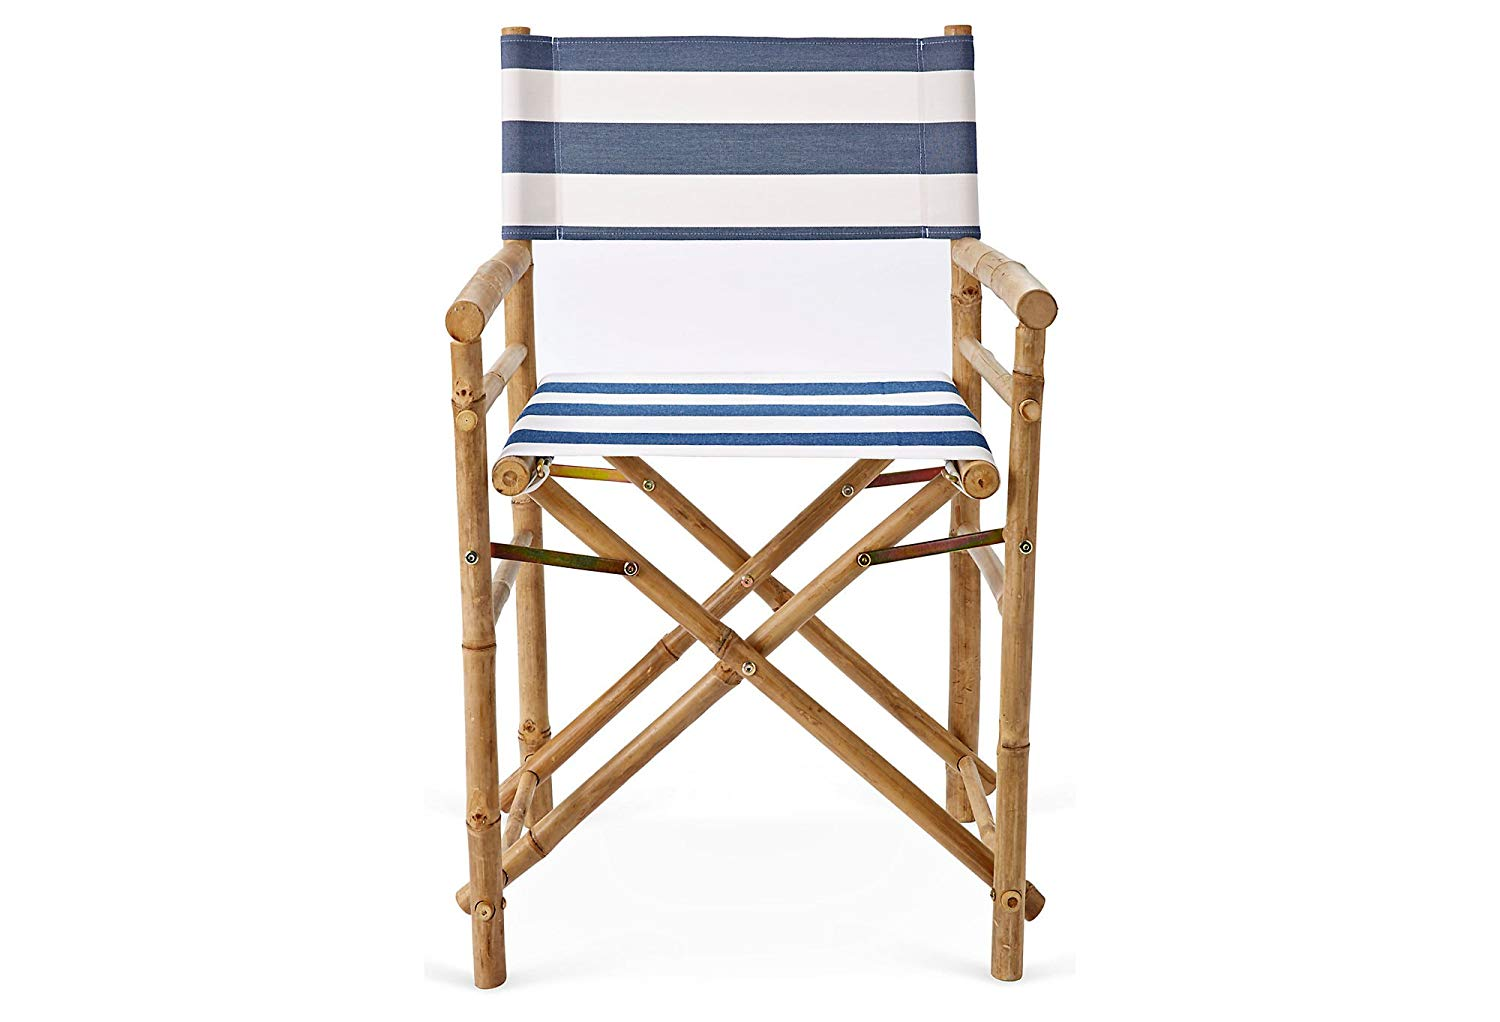 Set of 2 Zew Hand Crafted Navy/White Foldable Bamboo Director's Chair with Striped Canvas